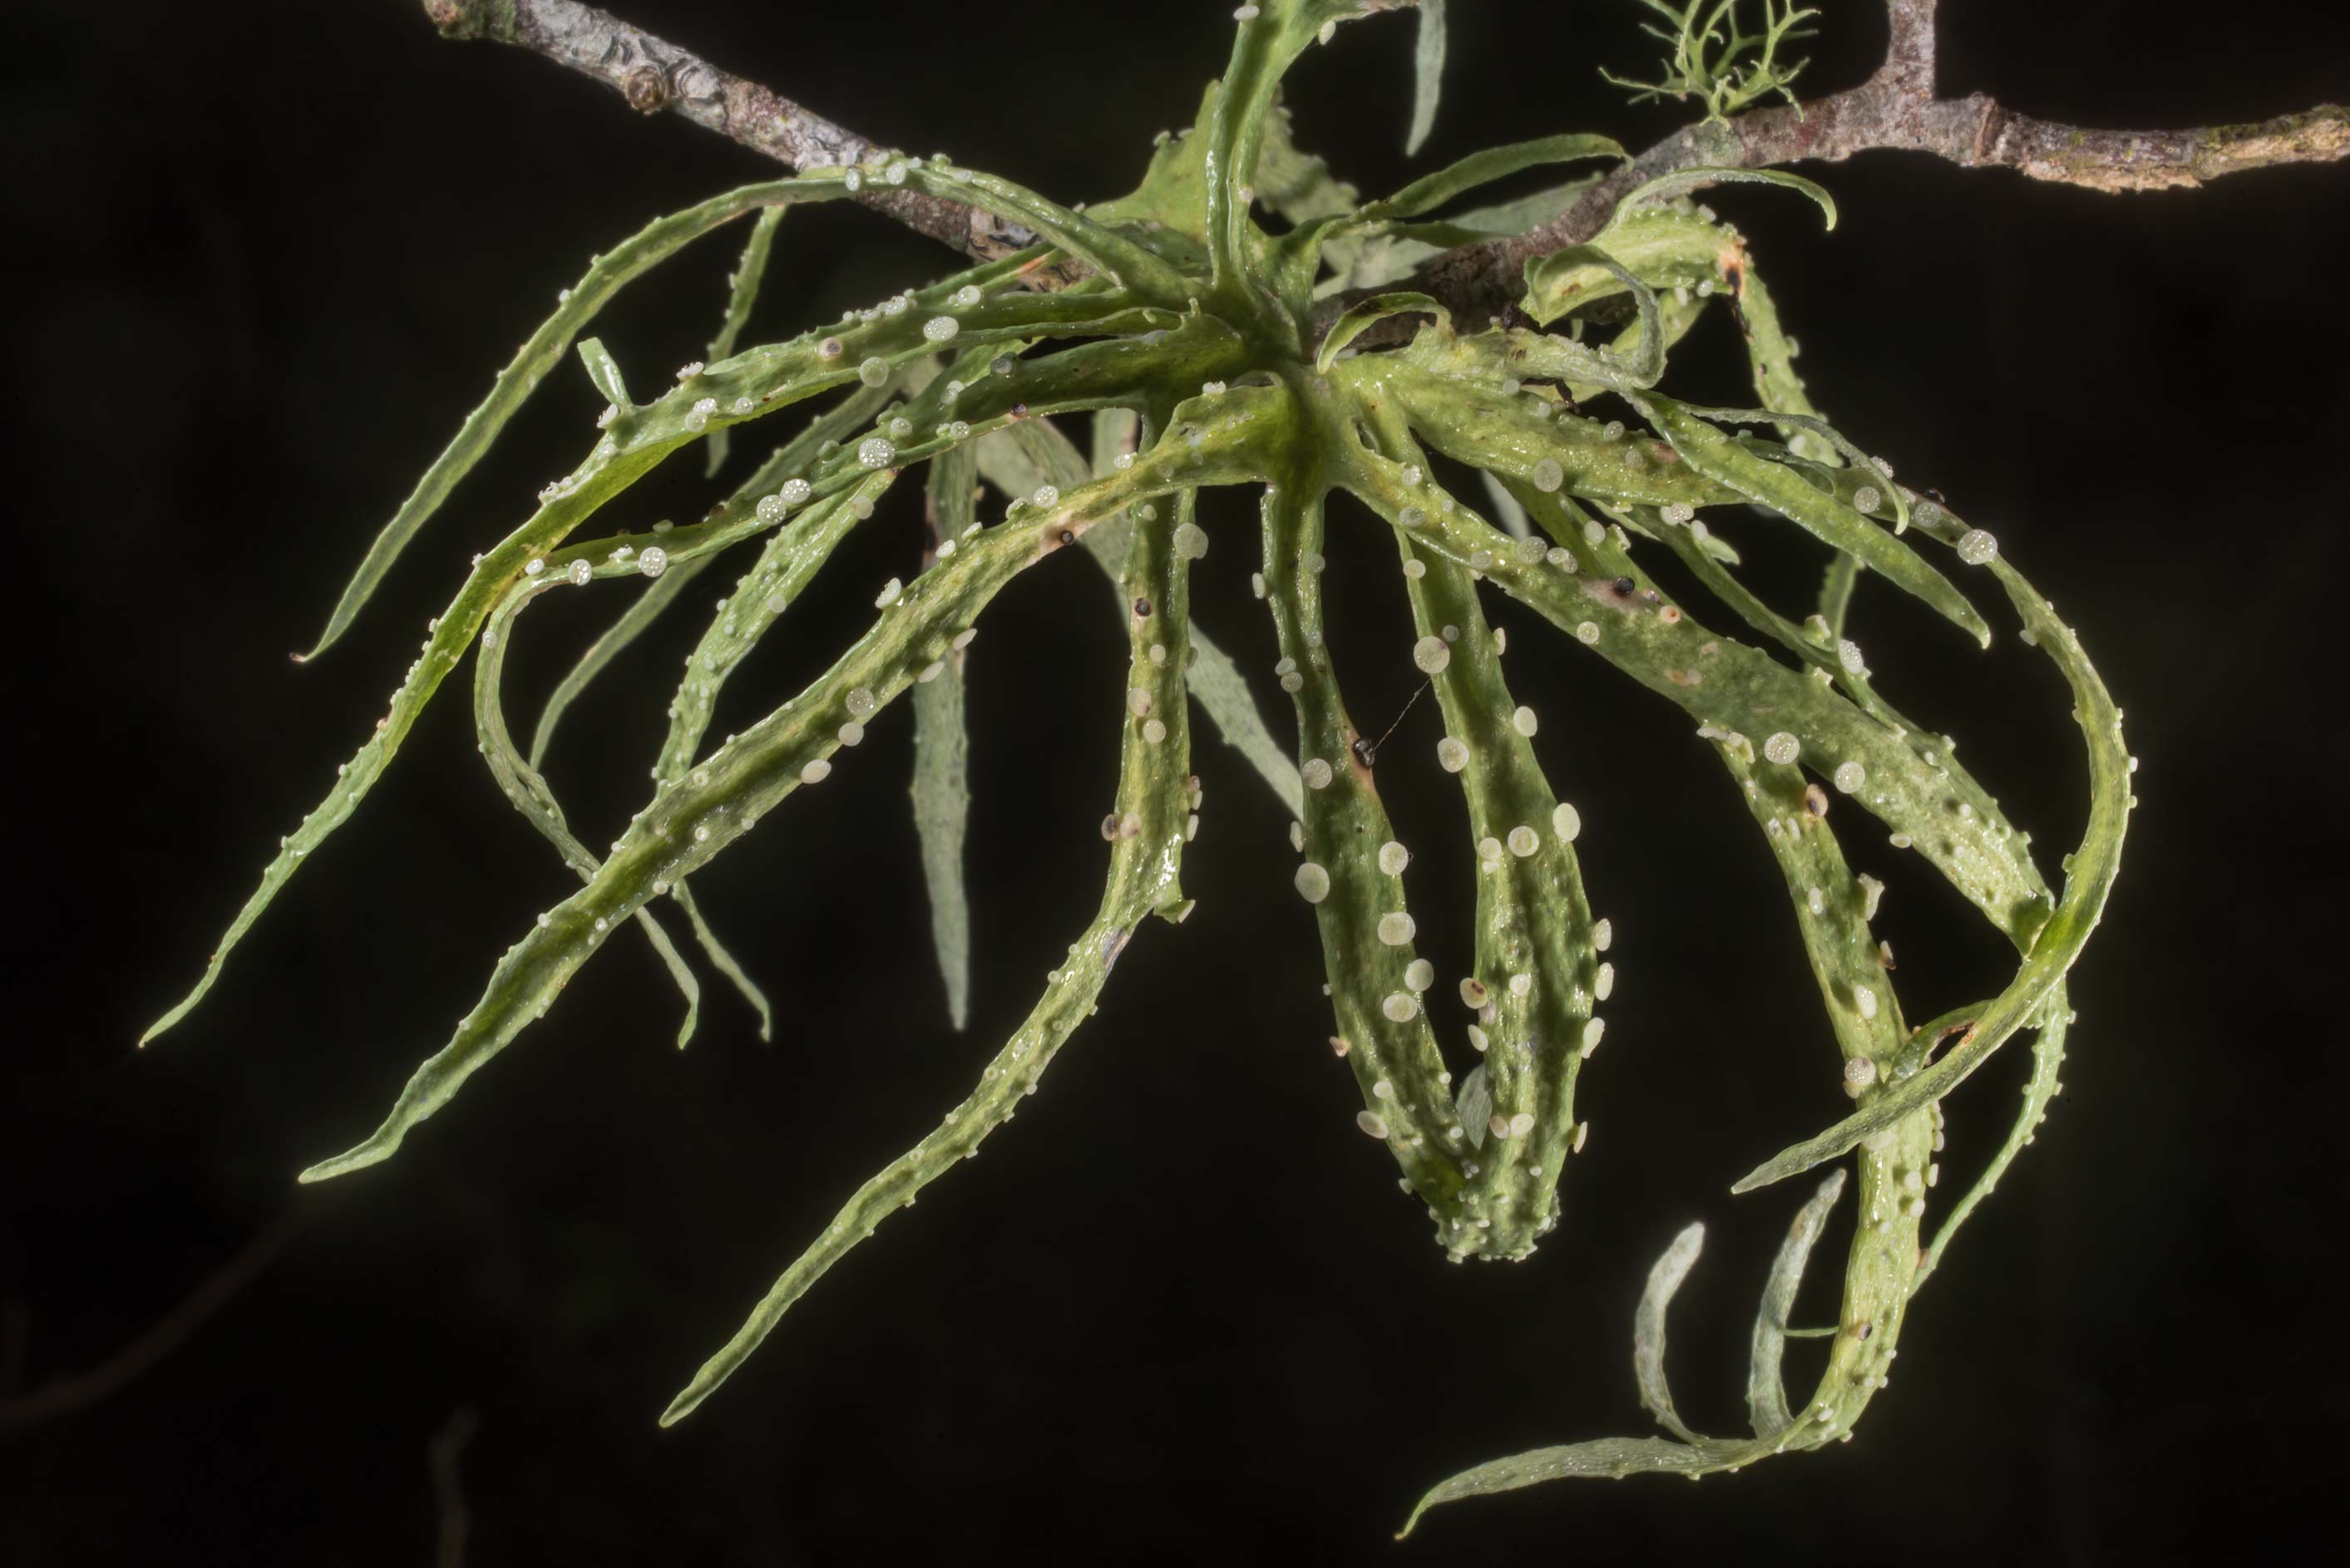 Octopus-like palmetto lichen (Ramalina celastri...State Historic Site. Washington, Texas